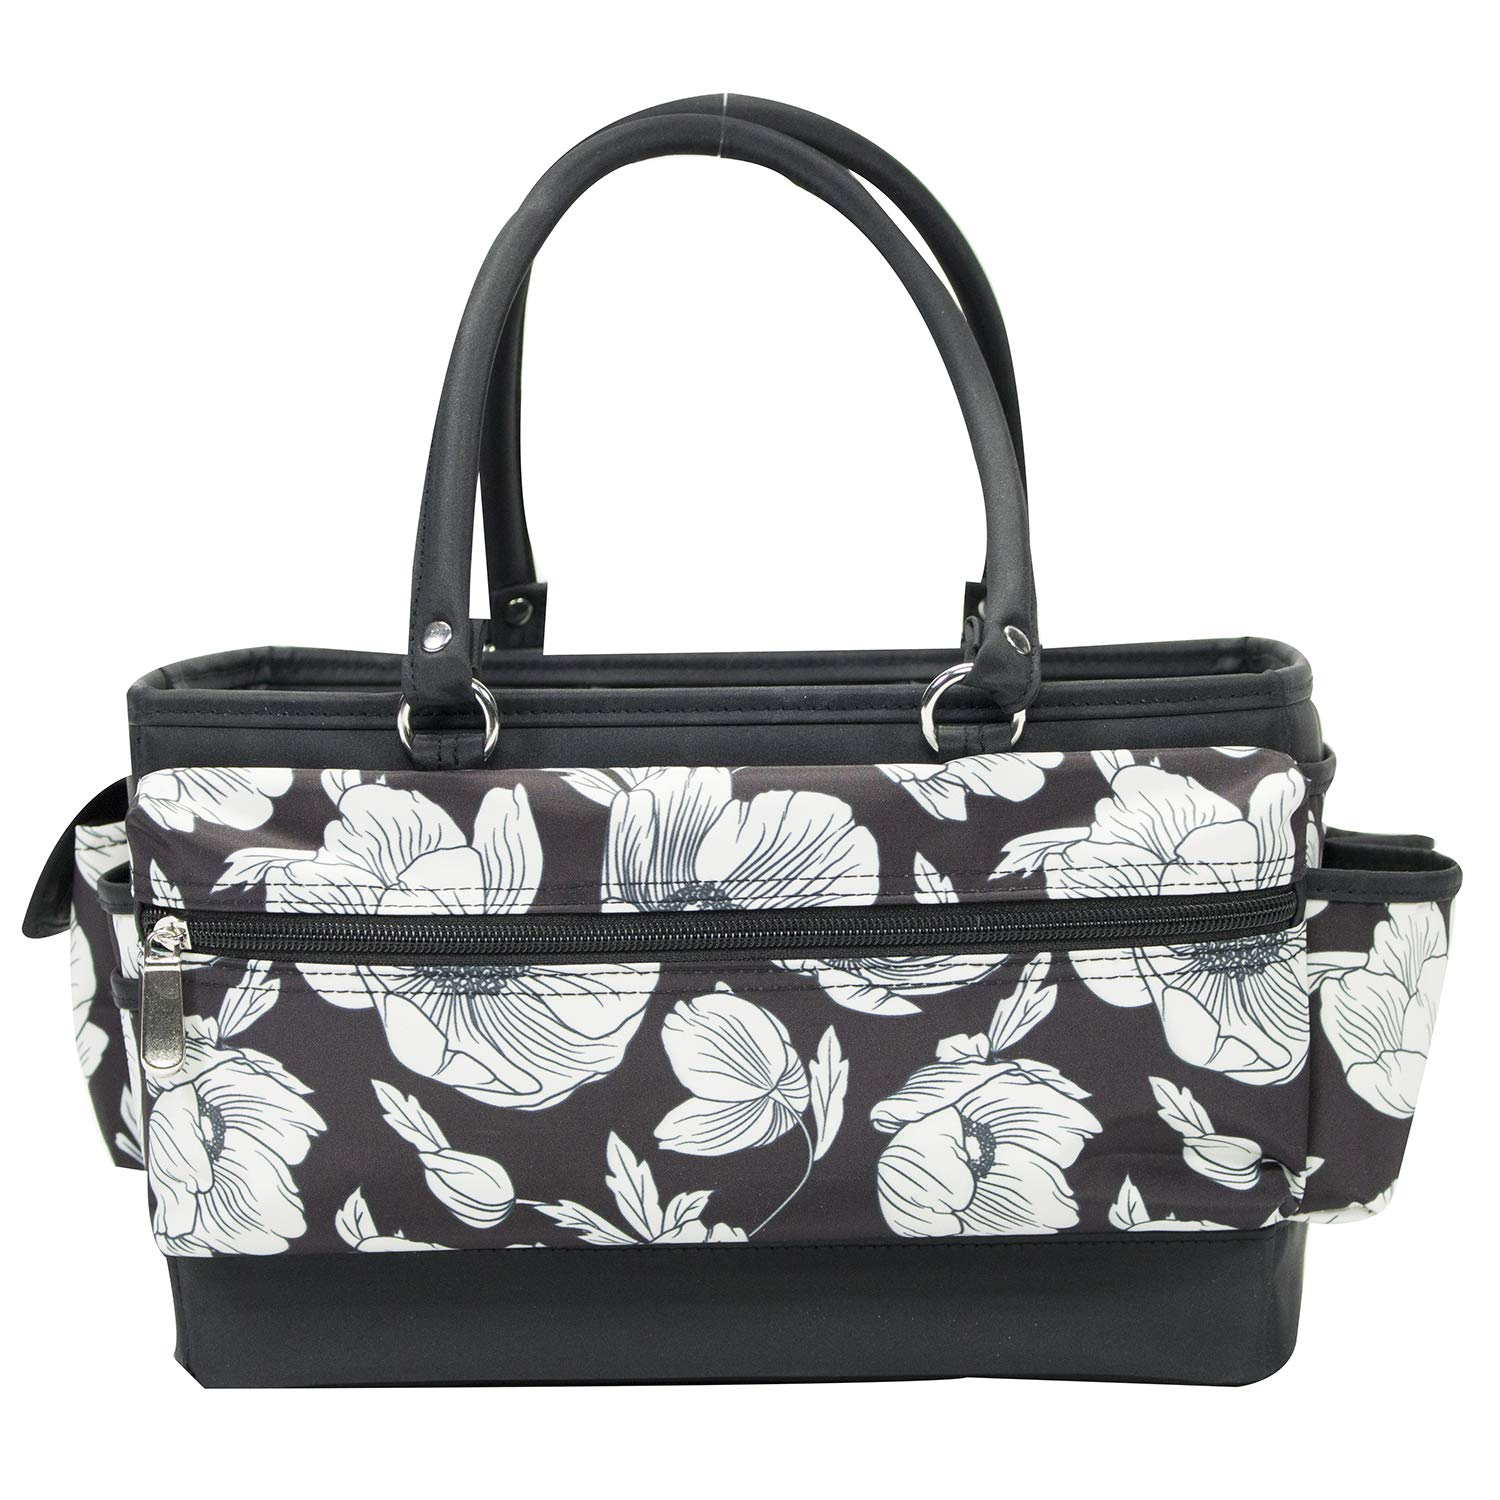 Storage Craft Bag Organizer for Crafts Supplies Storage Organization with Handles for Travel Art Everything Mary White Flower Deluxe Store and Tote Sewing Paper Canvas Desk